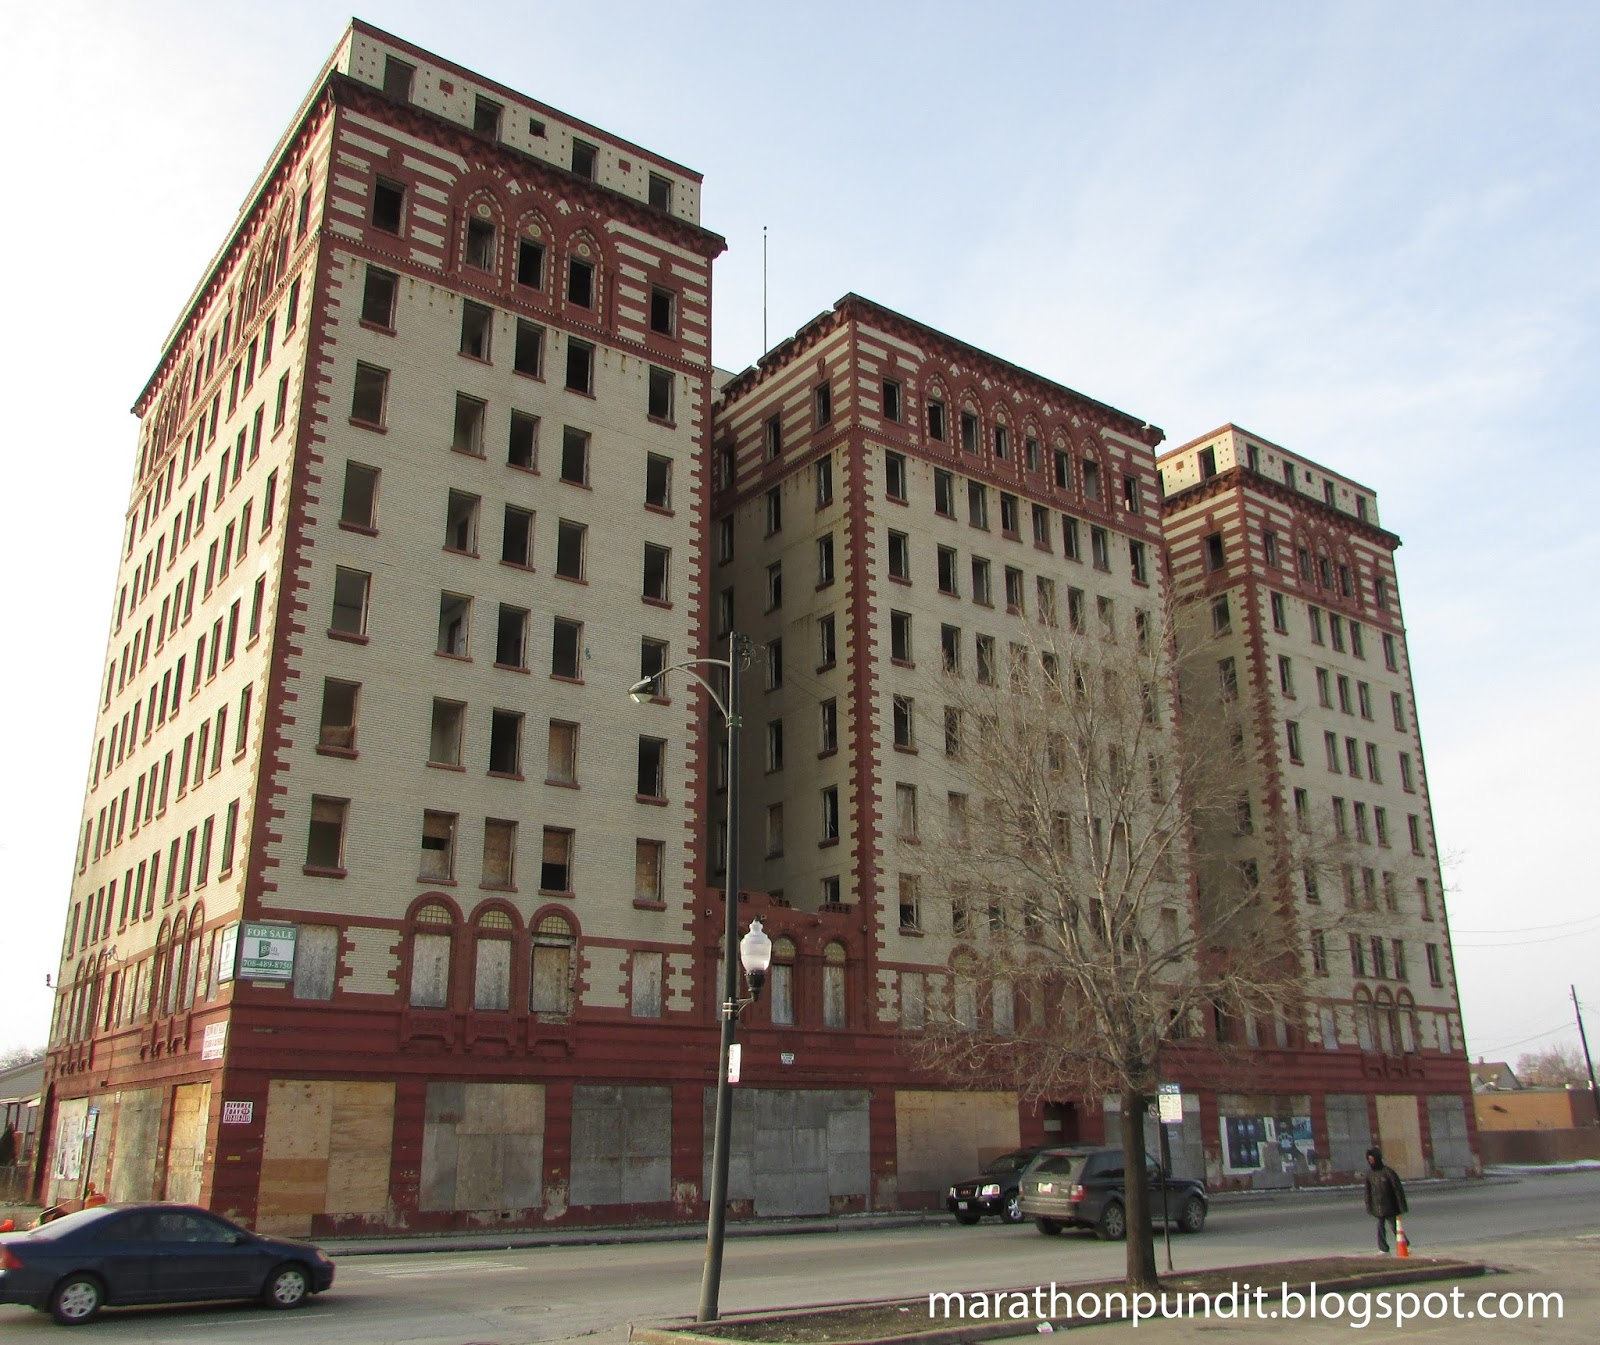 Garfield Park Apartments: Marathon Pundit: (Photos) Abandoned Homes In Chicago's